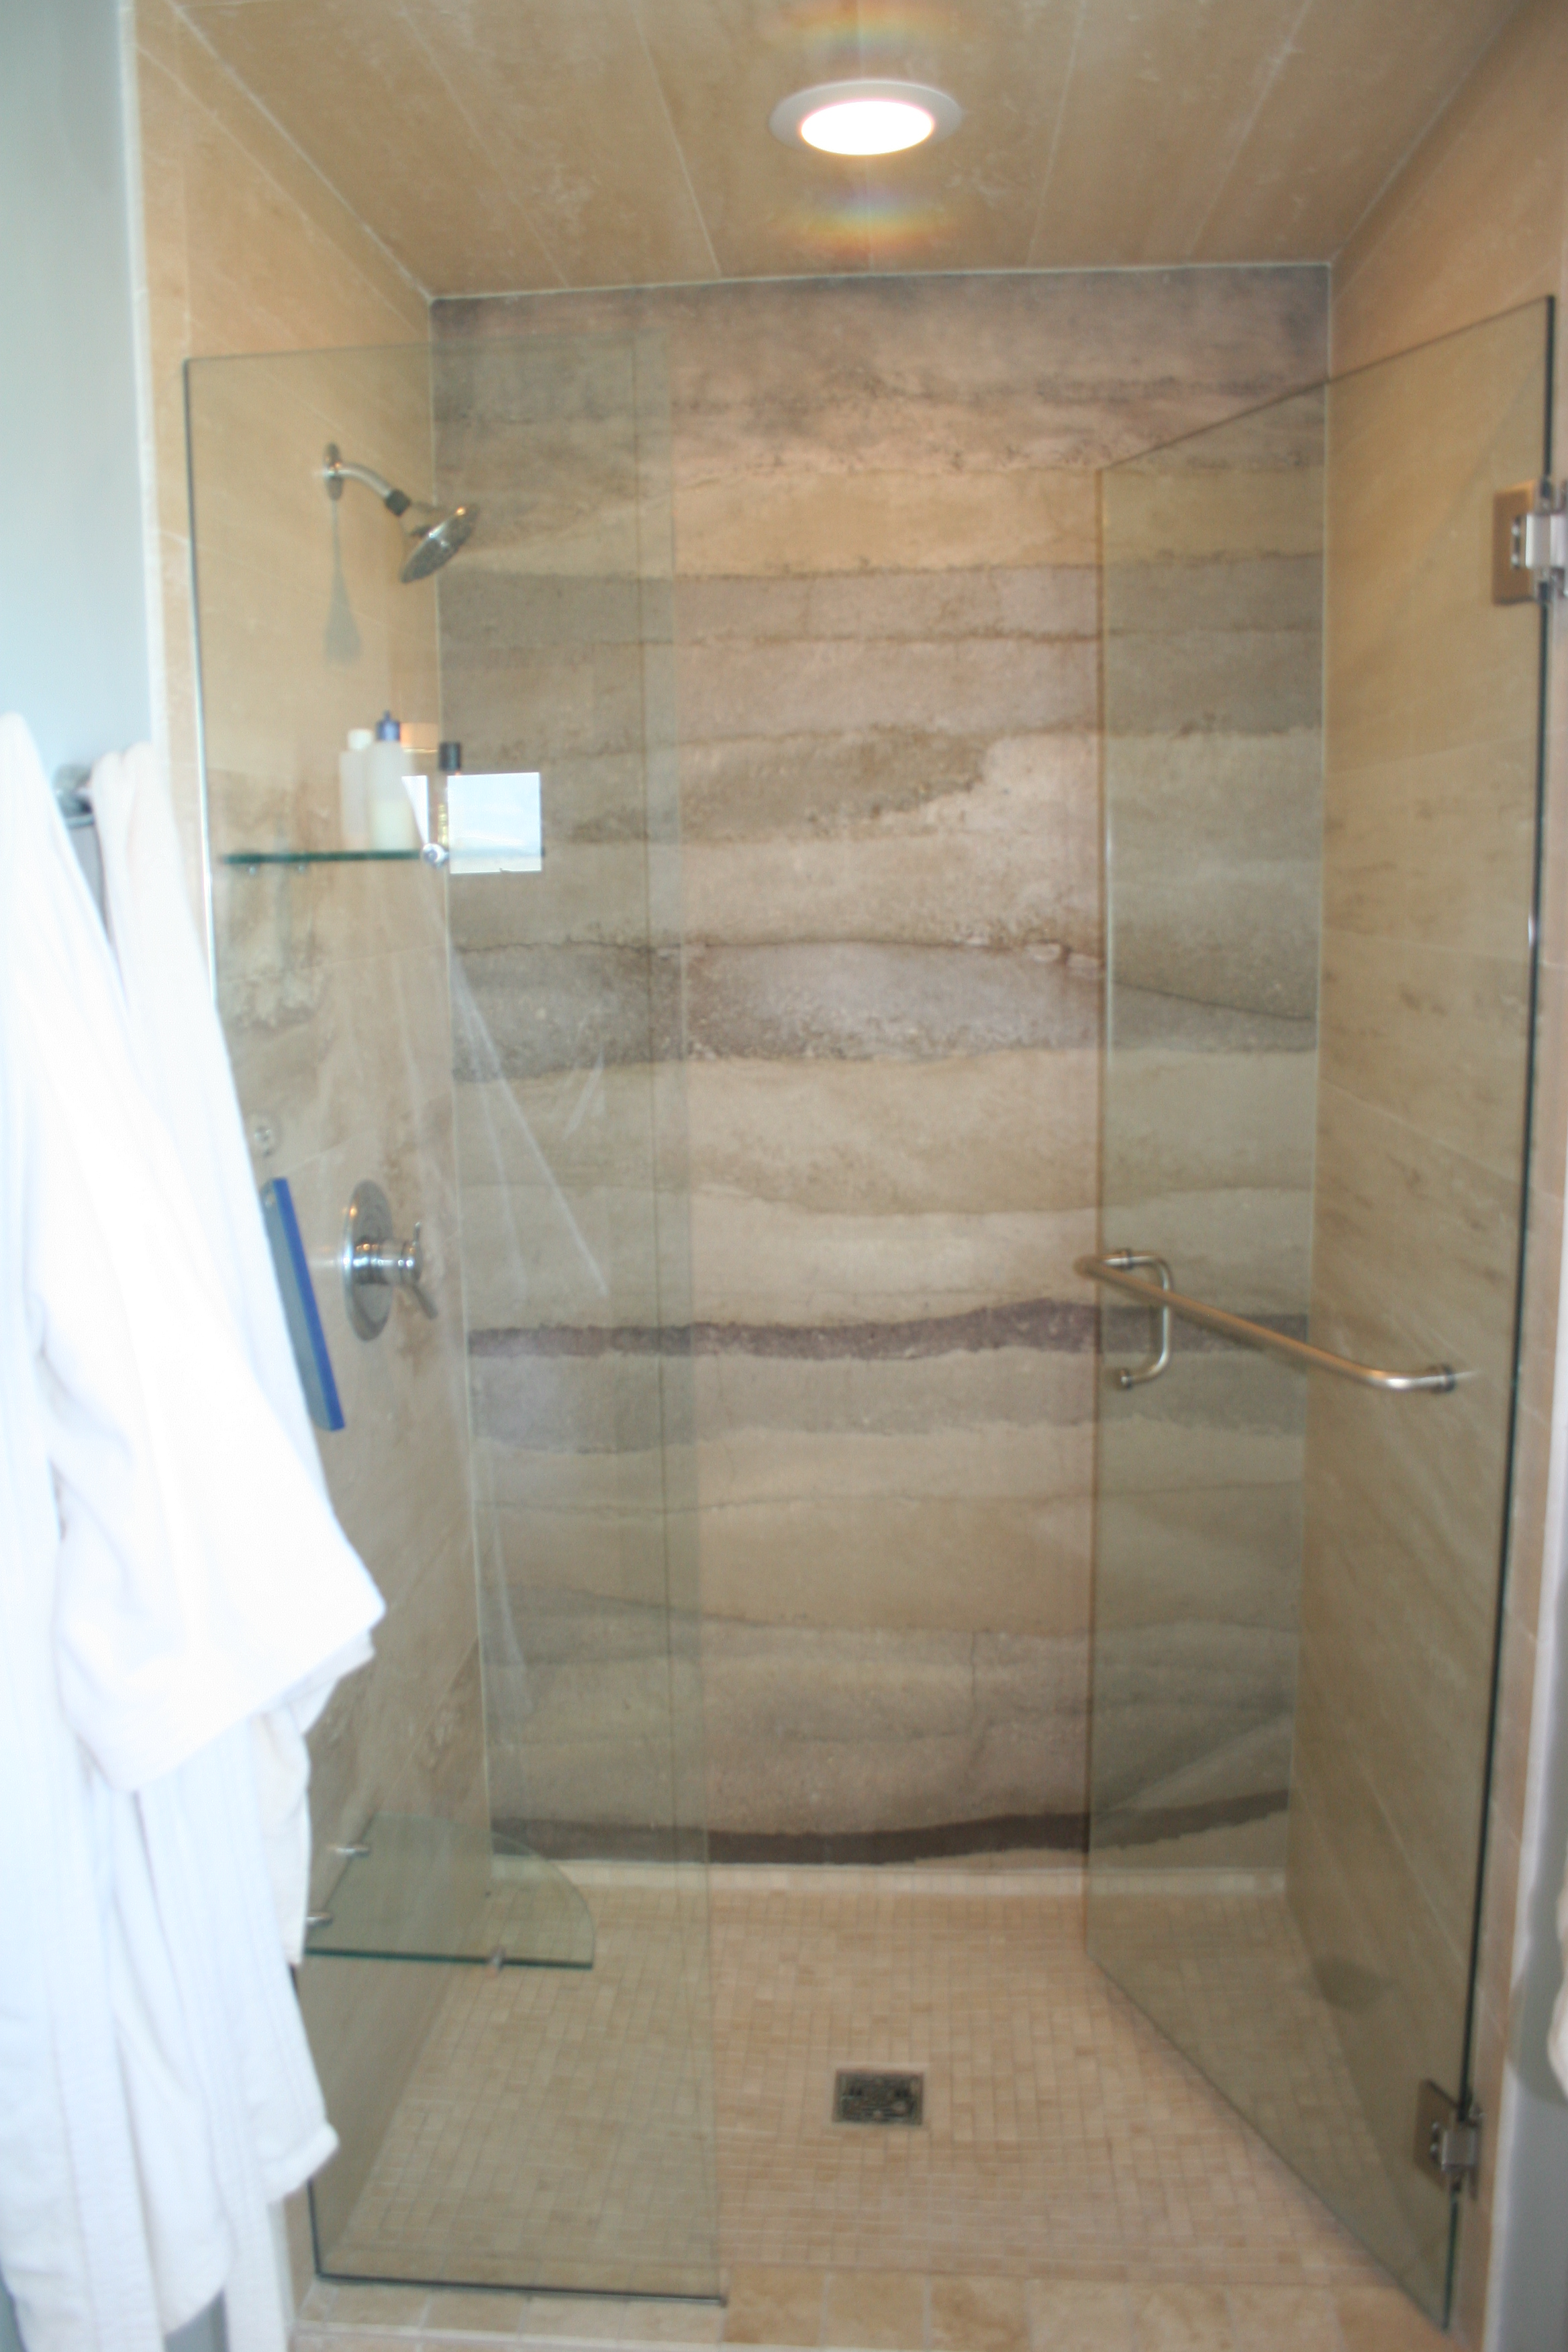 Wall sealed and exposed to shower